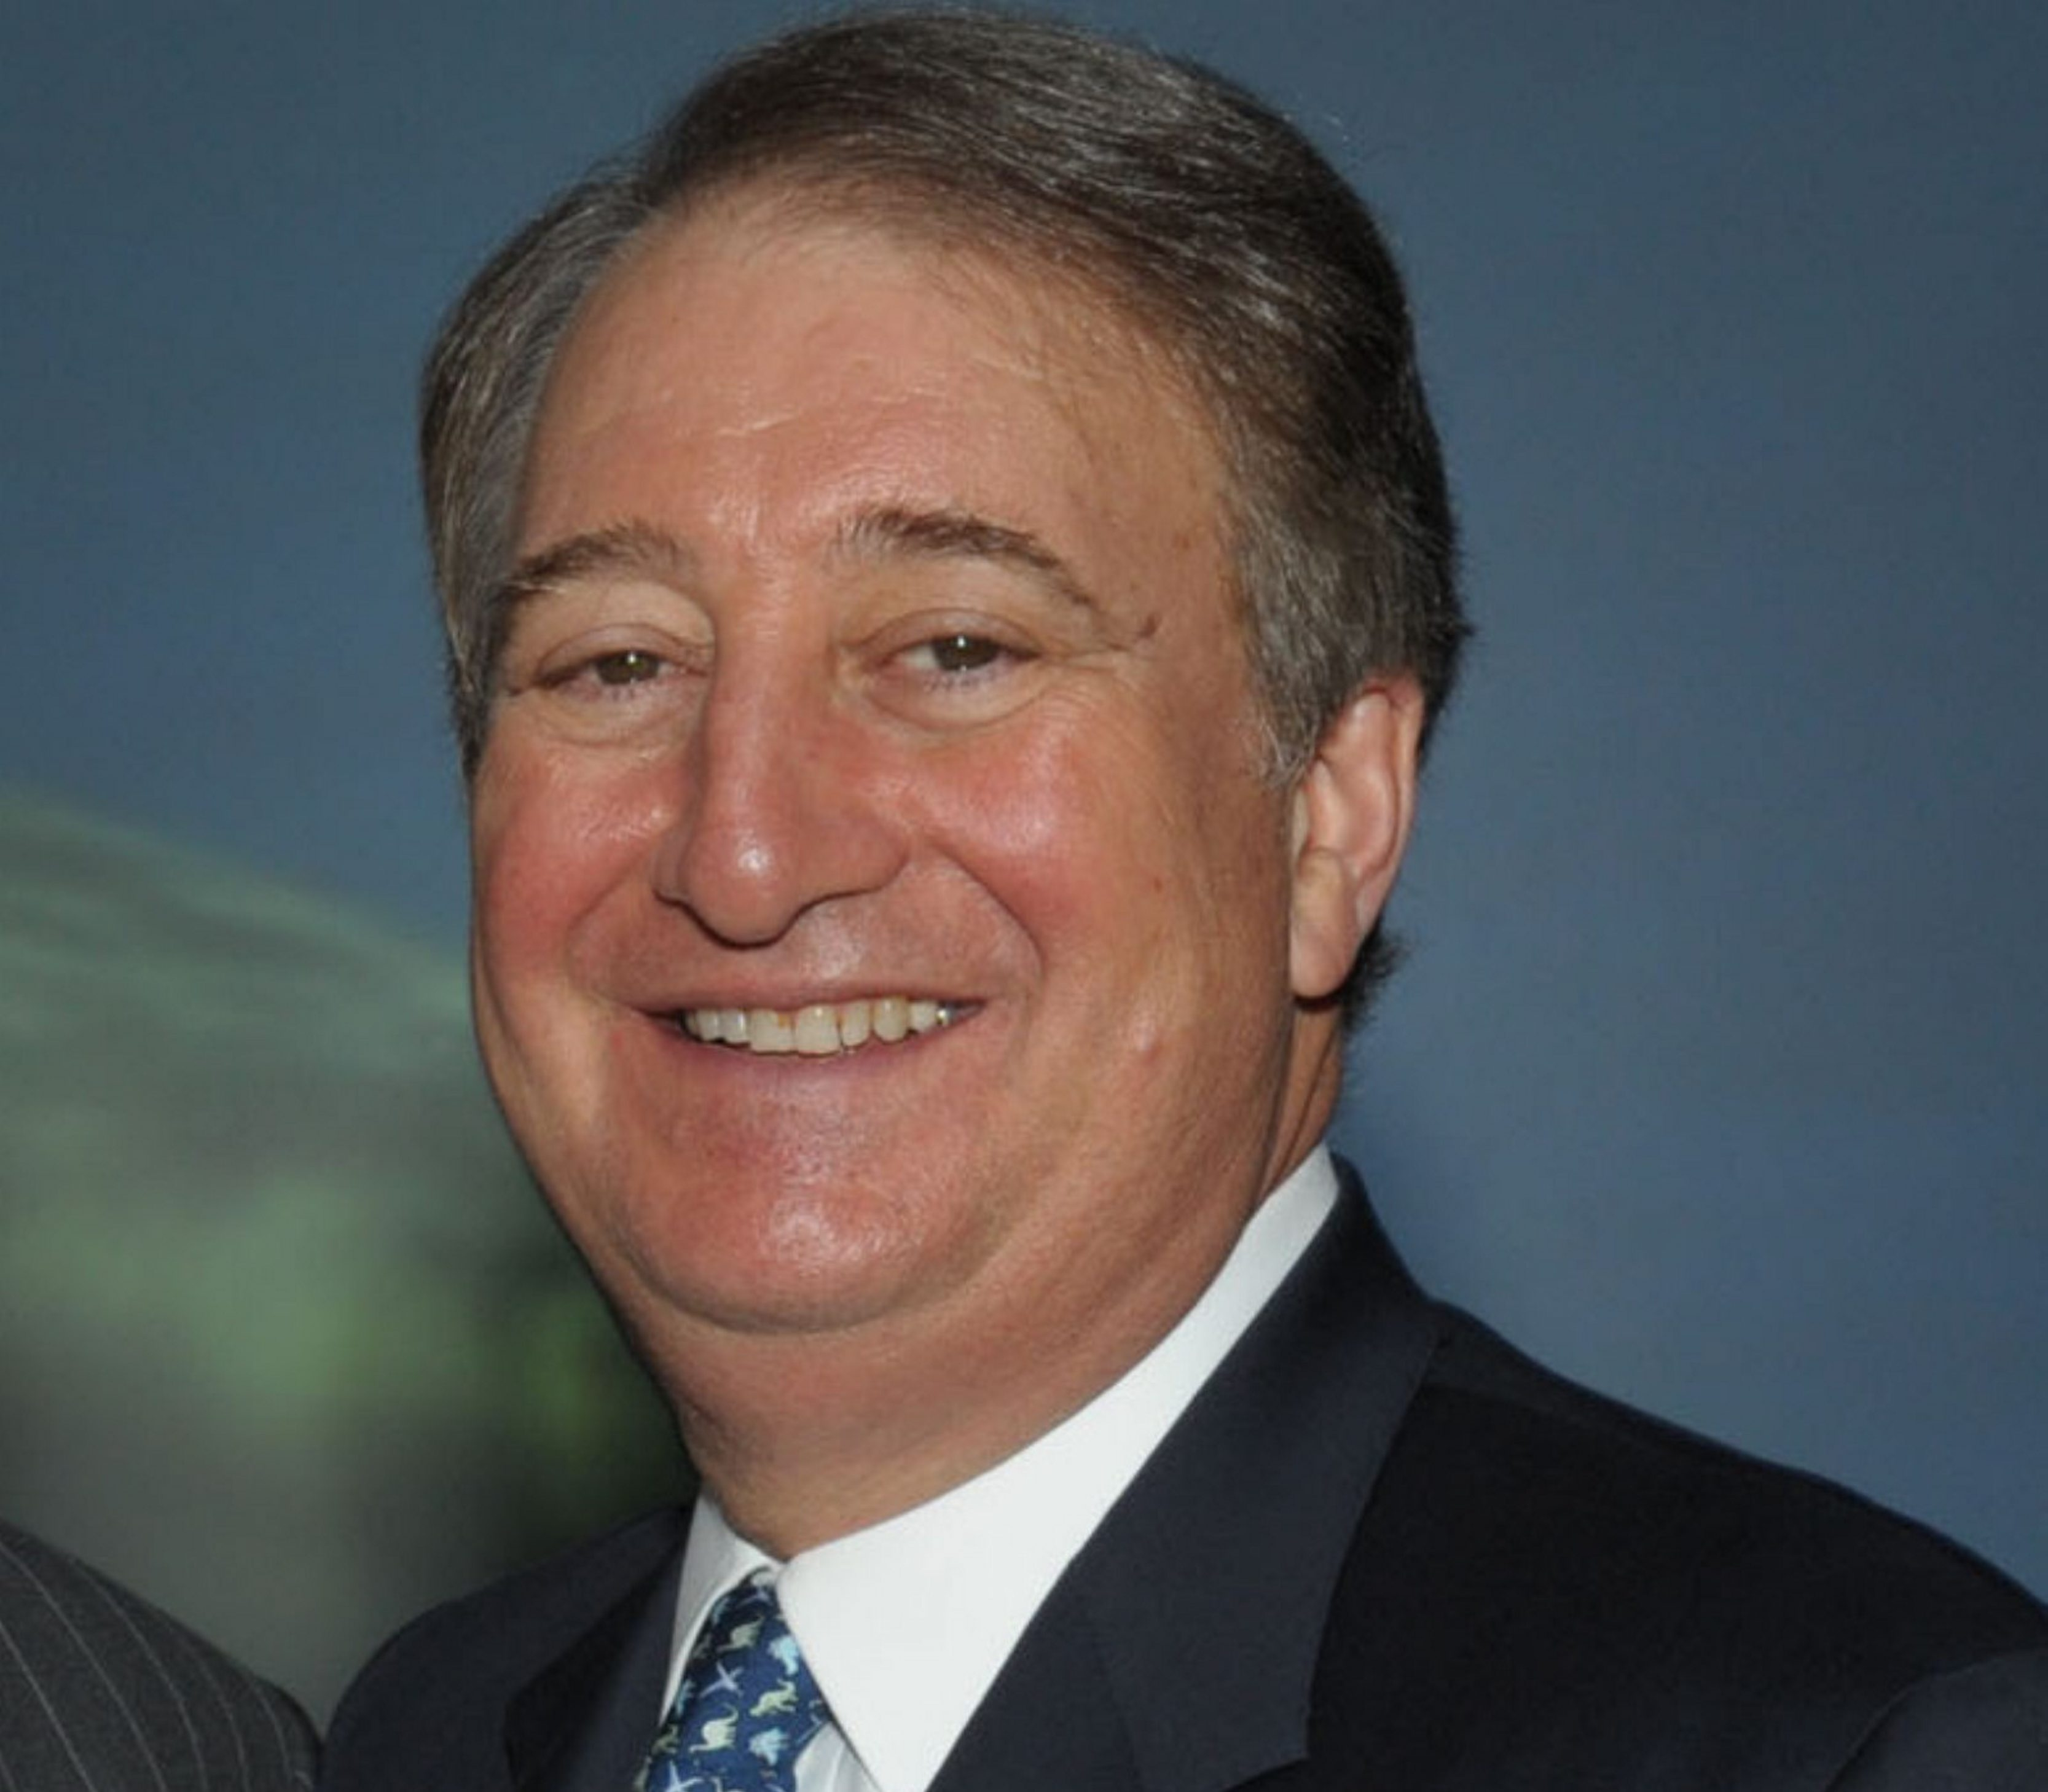 Howard P. Milstein was appointed by Gov. Cuomo in 2011.